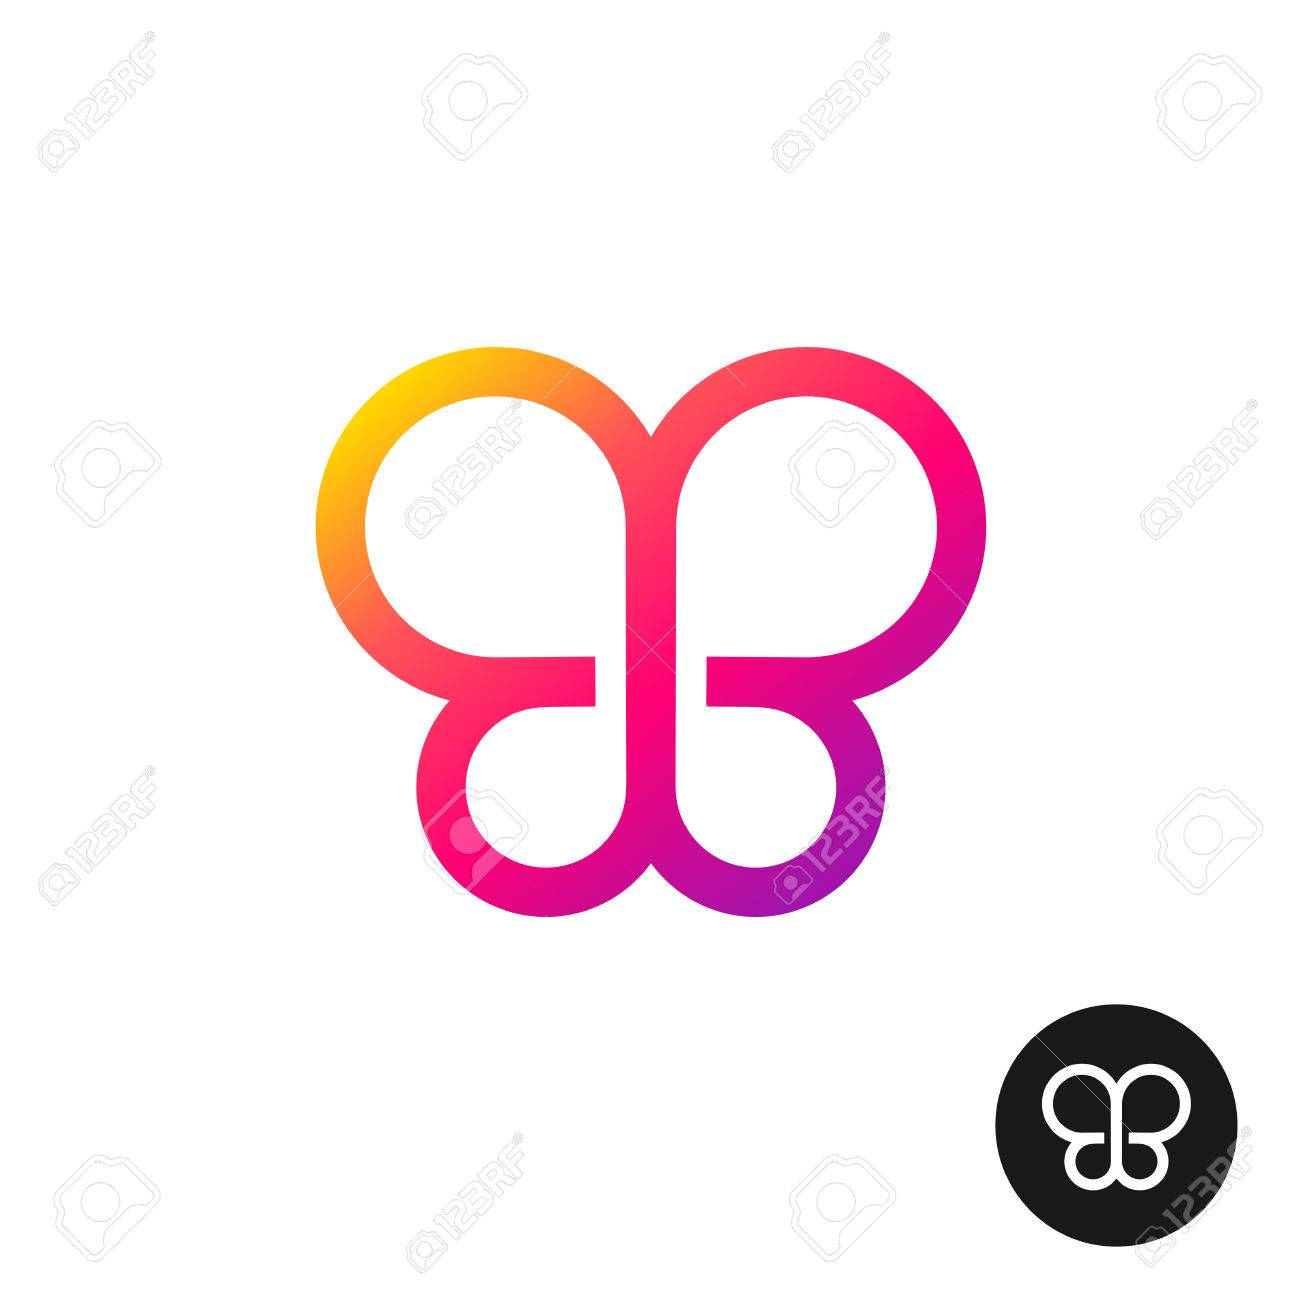 Colorful butterfly logo linear geometric style circles symbol colorful butterfly logo linear geometric style circles symbol stock vector 59667592 biocorpaavc Image collections